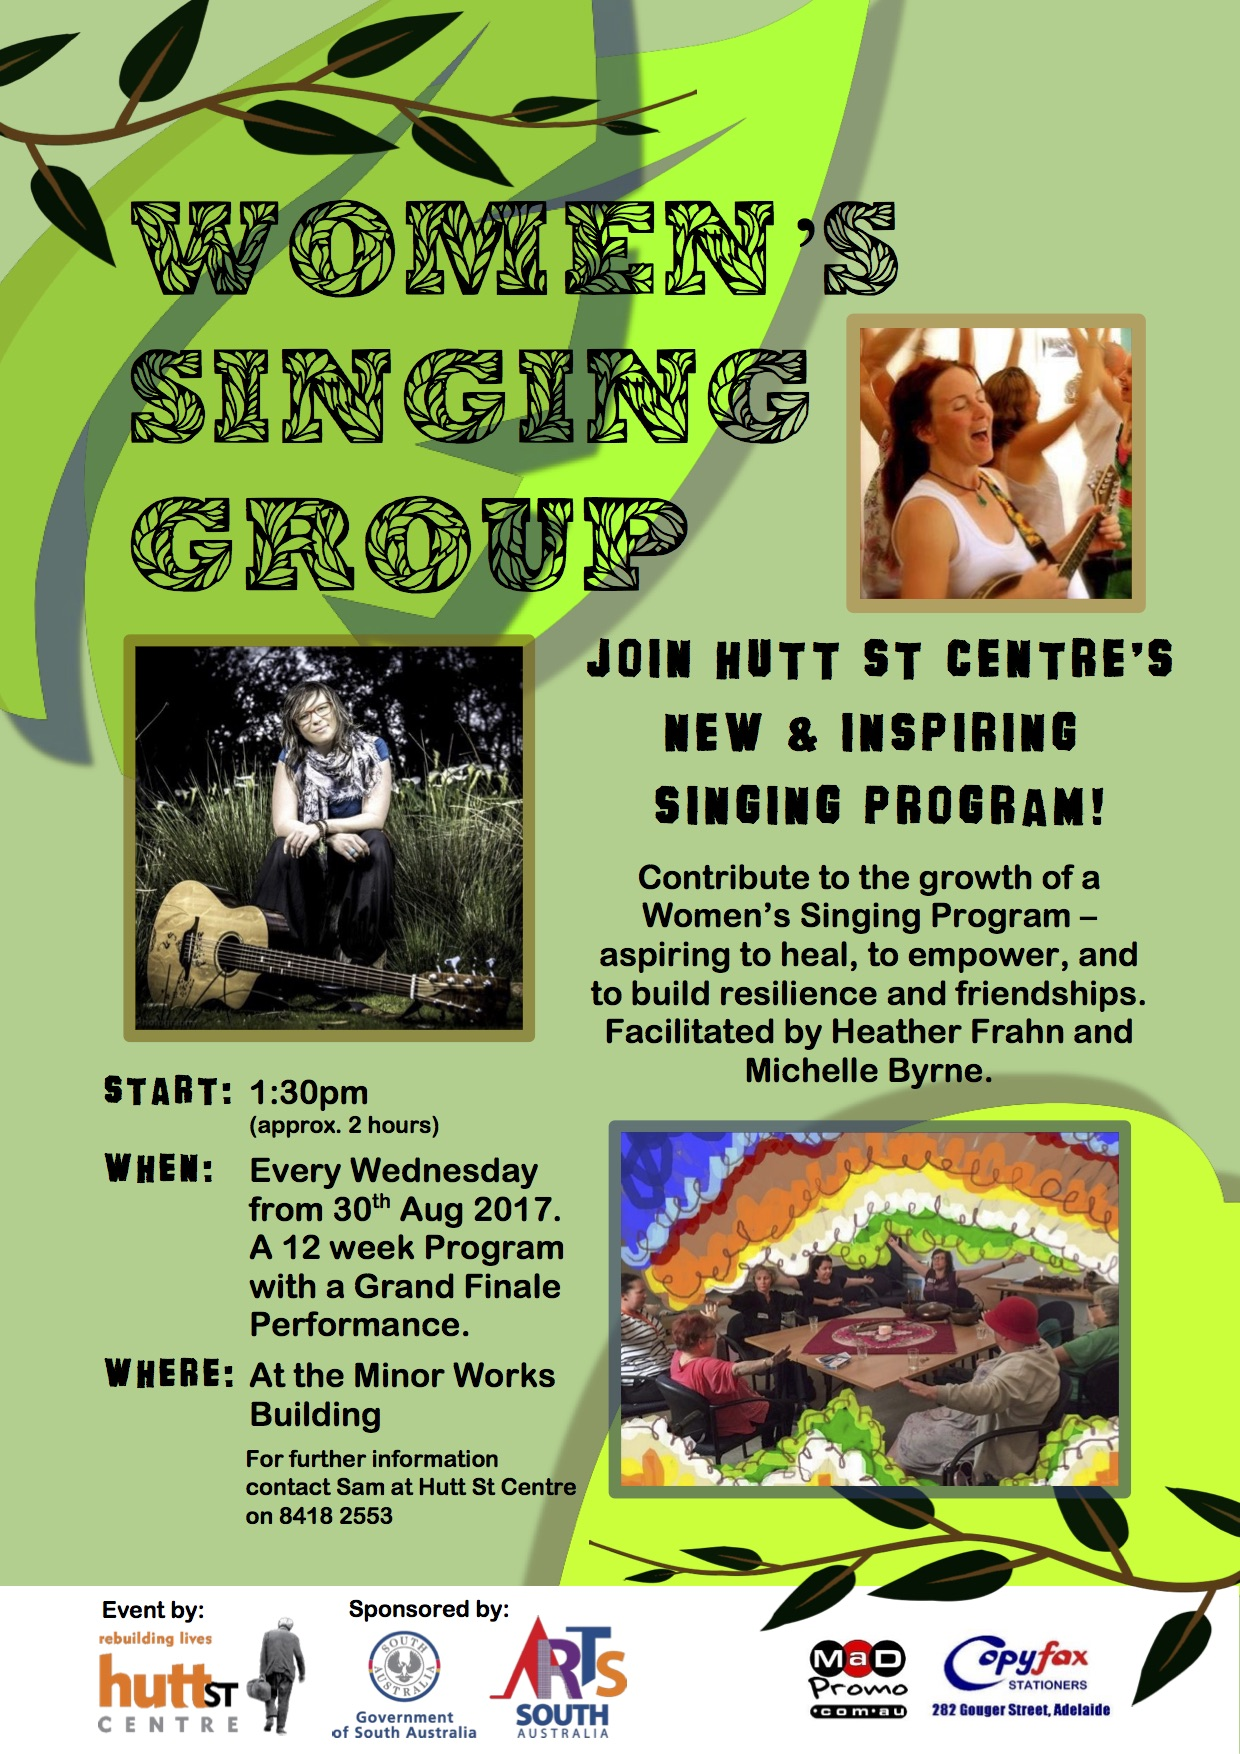 Helping Aspire Hope and Empowerment Through Womens Singing Group